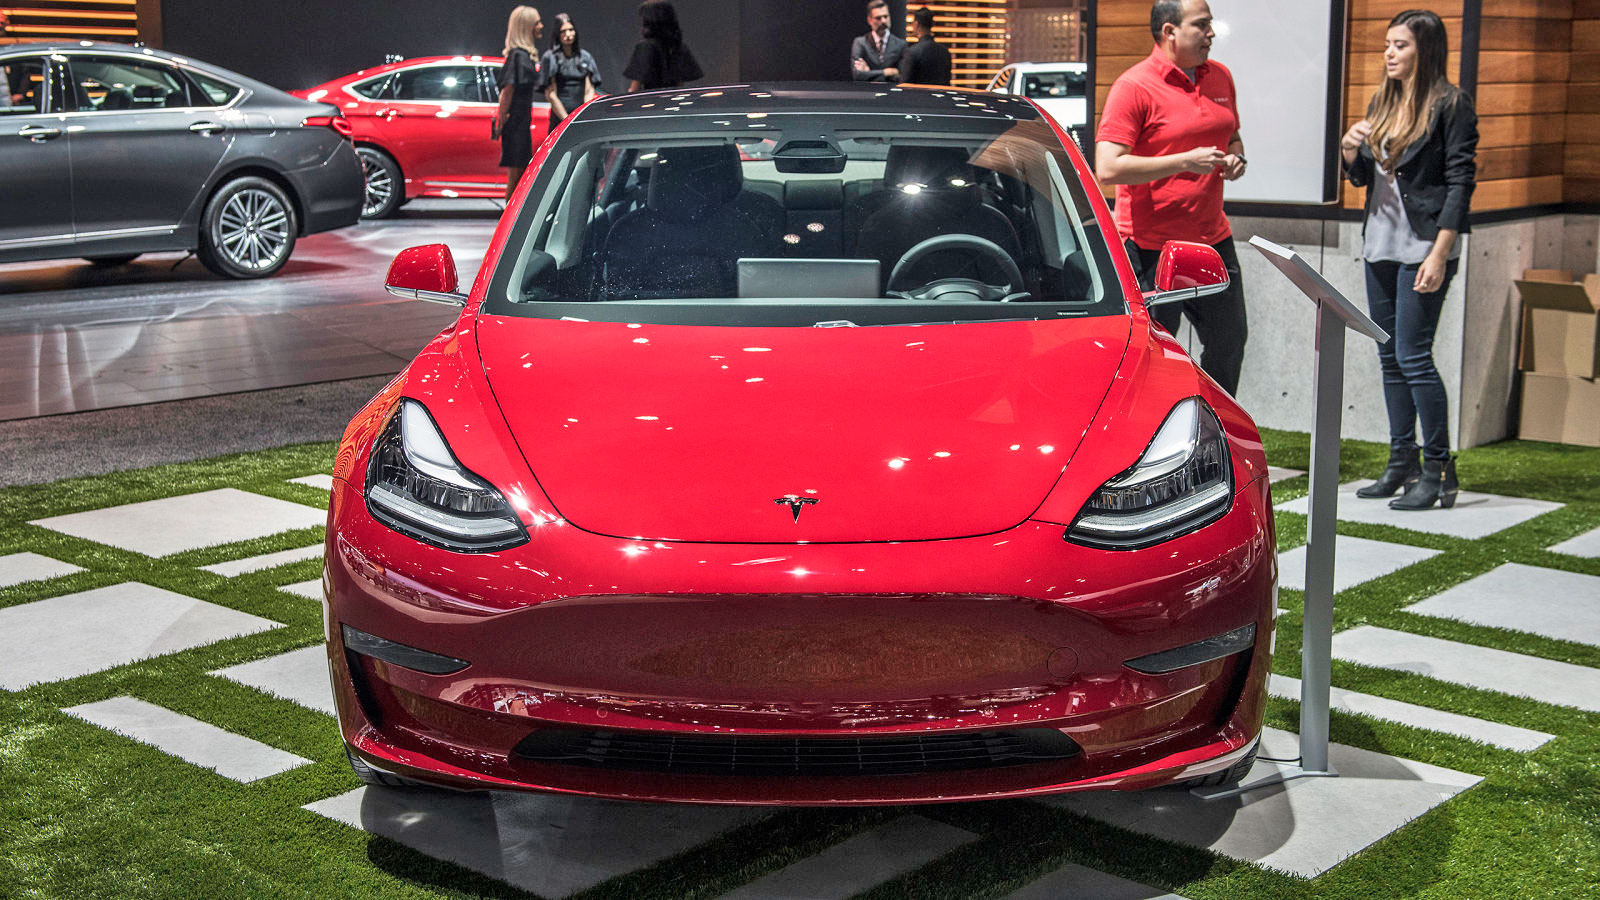 Tesla's Model 3 catches up on Autopilot and WiFi features